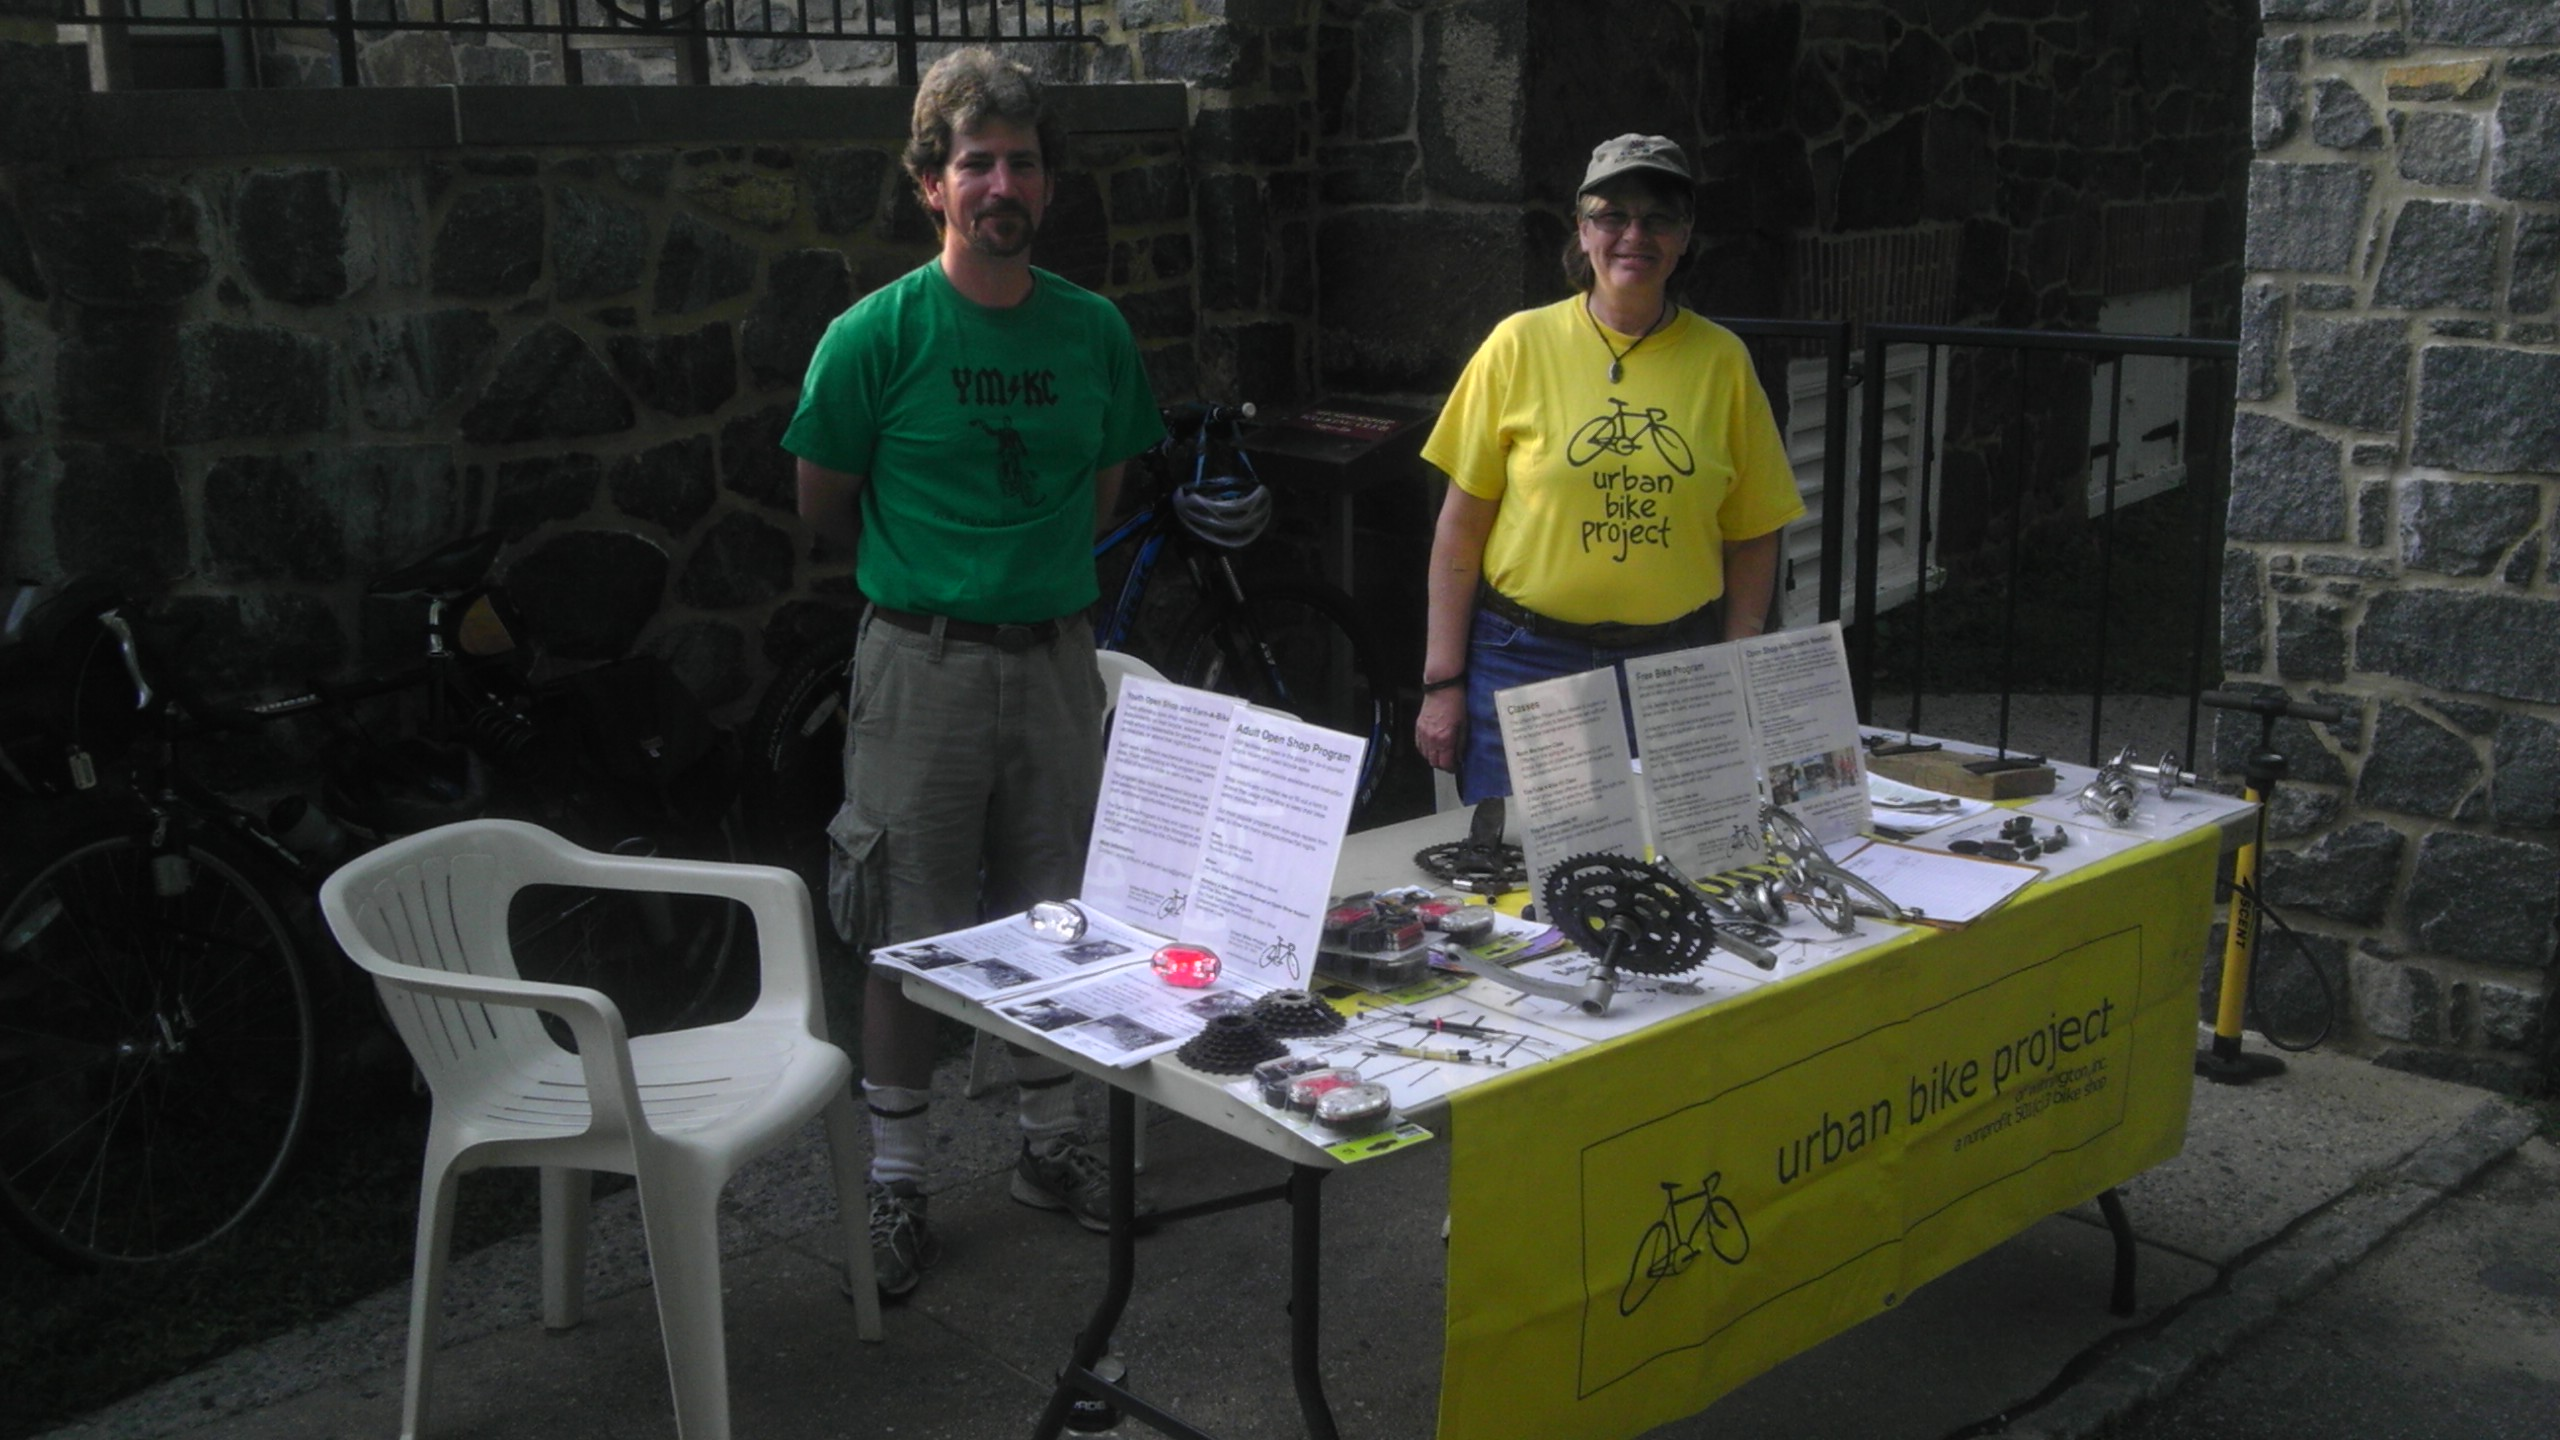 Alex and Mary staffing the Urban Bike Project table at Hagley's Bike and Hike.